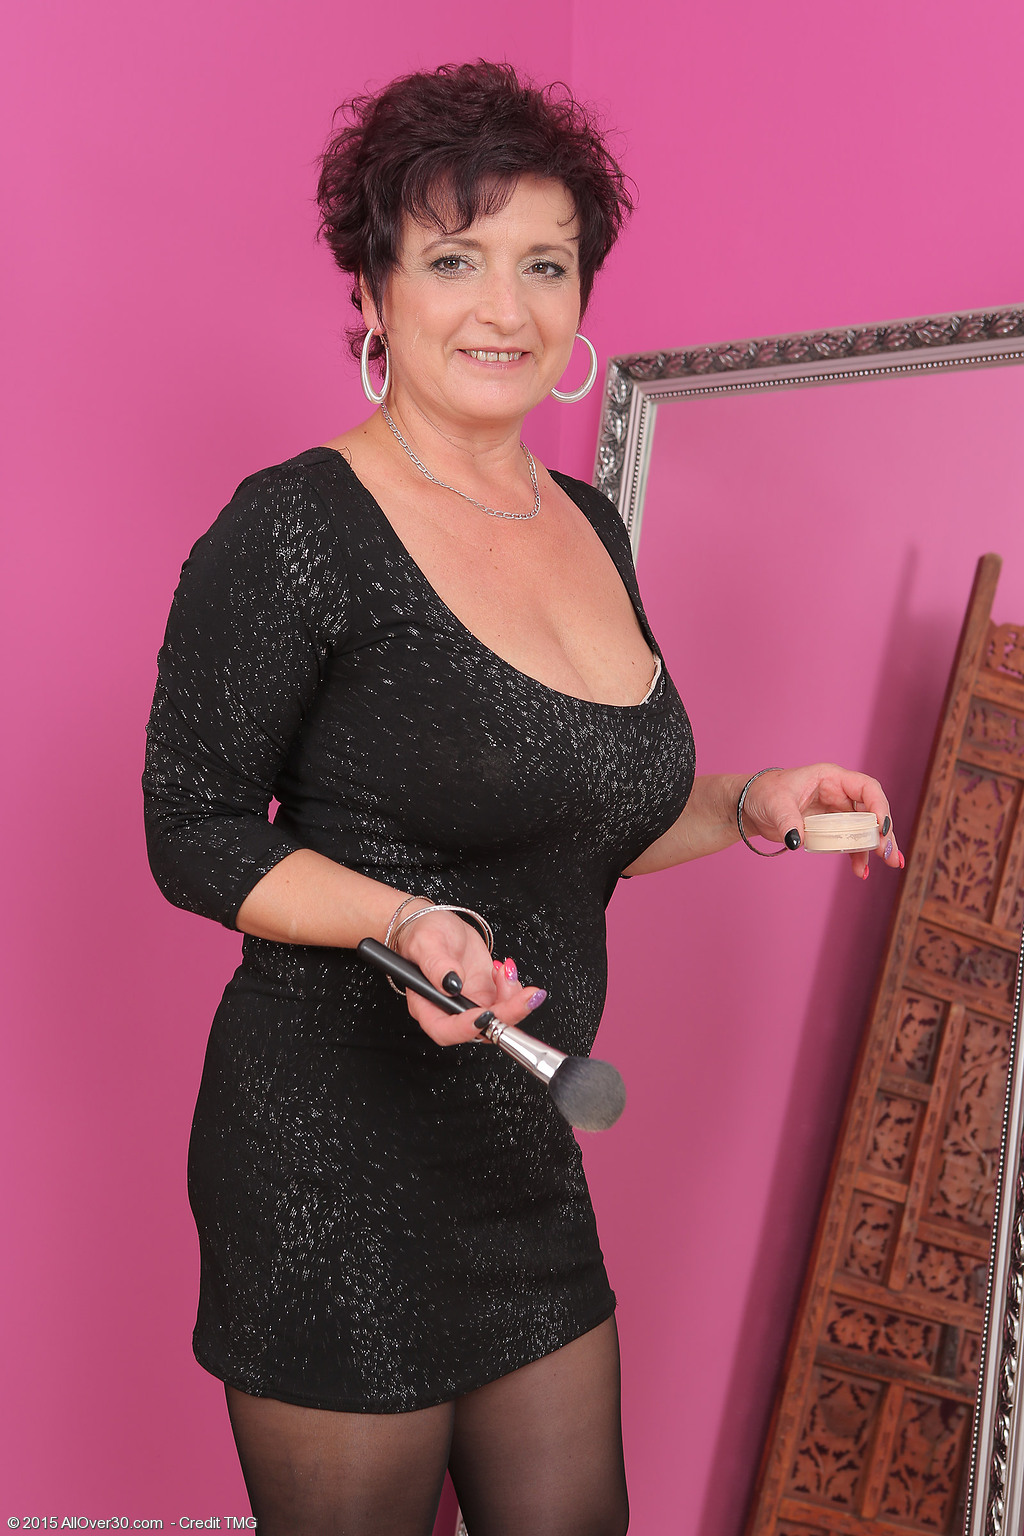 52 Year Old Jessica Wild - Exclusive Milf Pictures From -2214